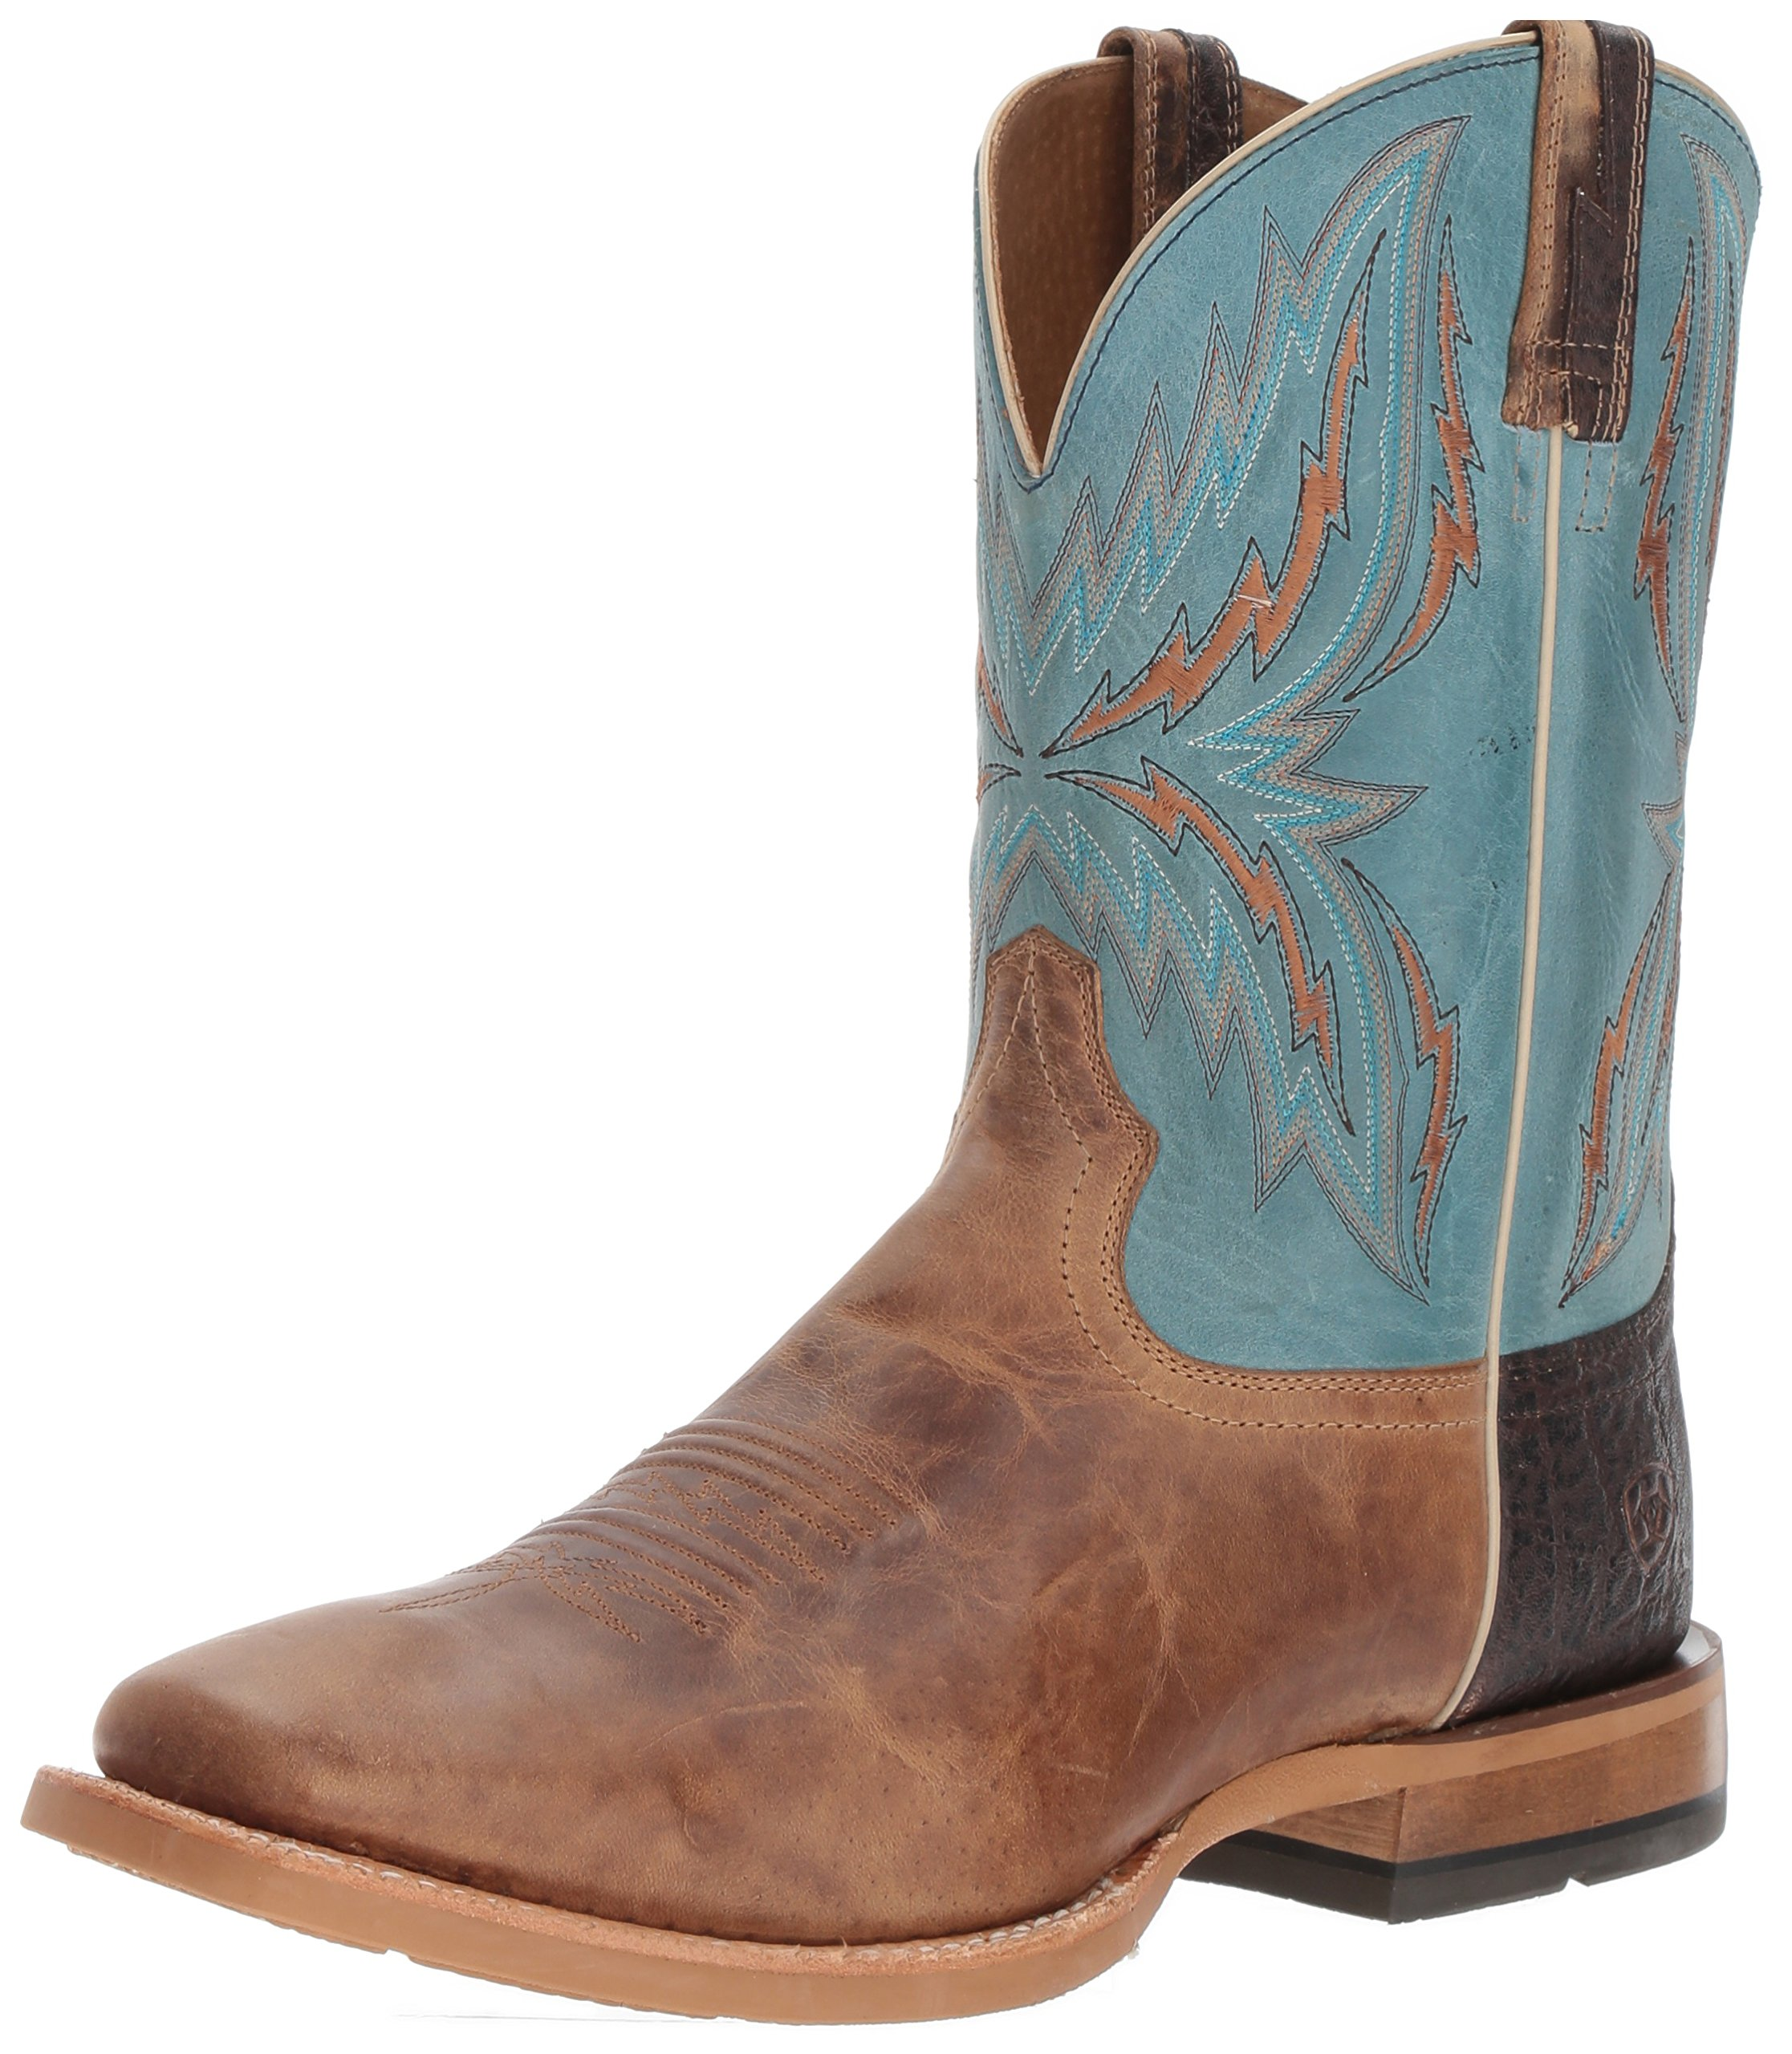 Ariat Men's Arena Rebound Boot, Dusted Wheat, 10 D US